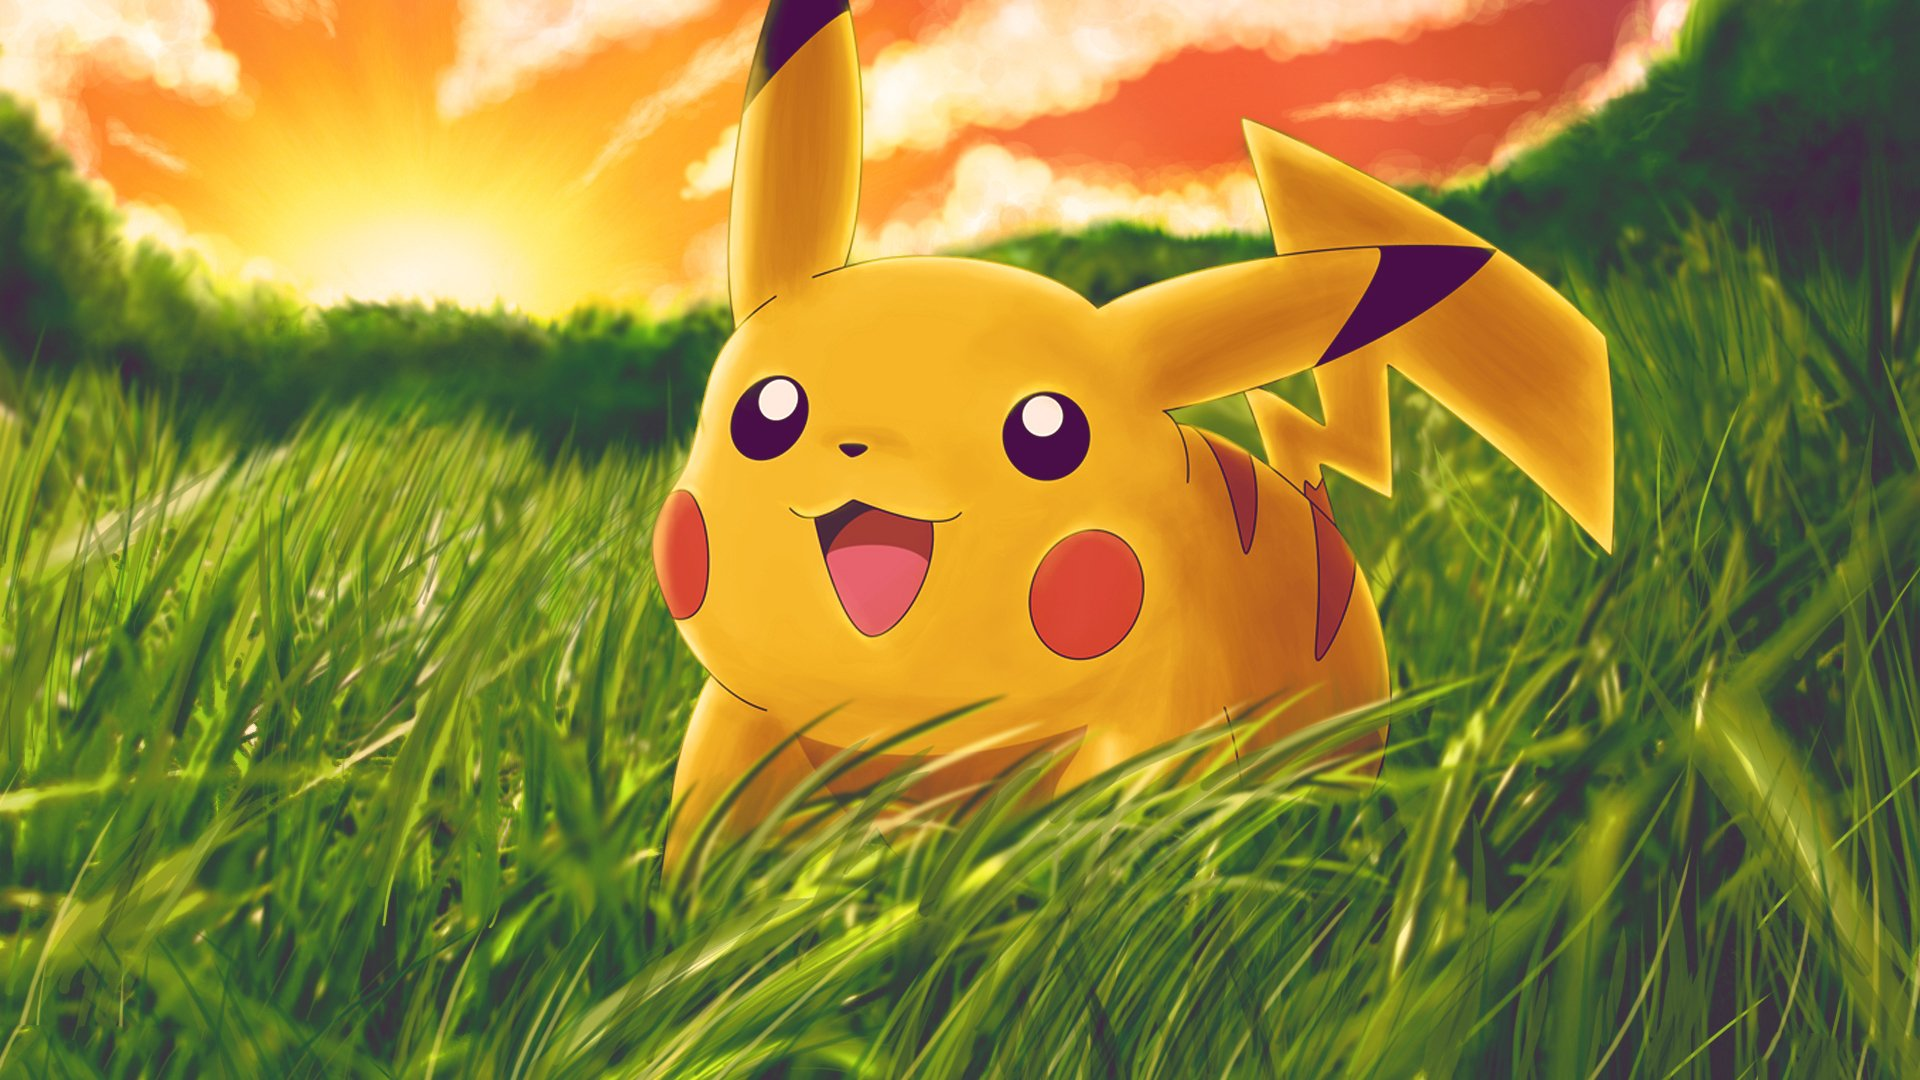 Anime - Pokémon  Anime Pikachu Video Game Wallpaper